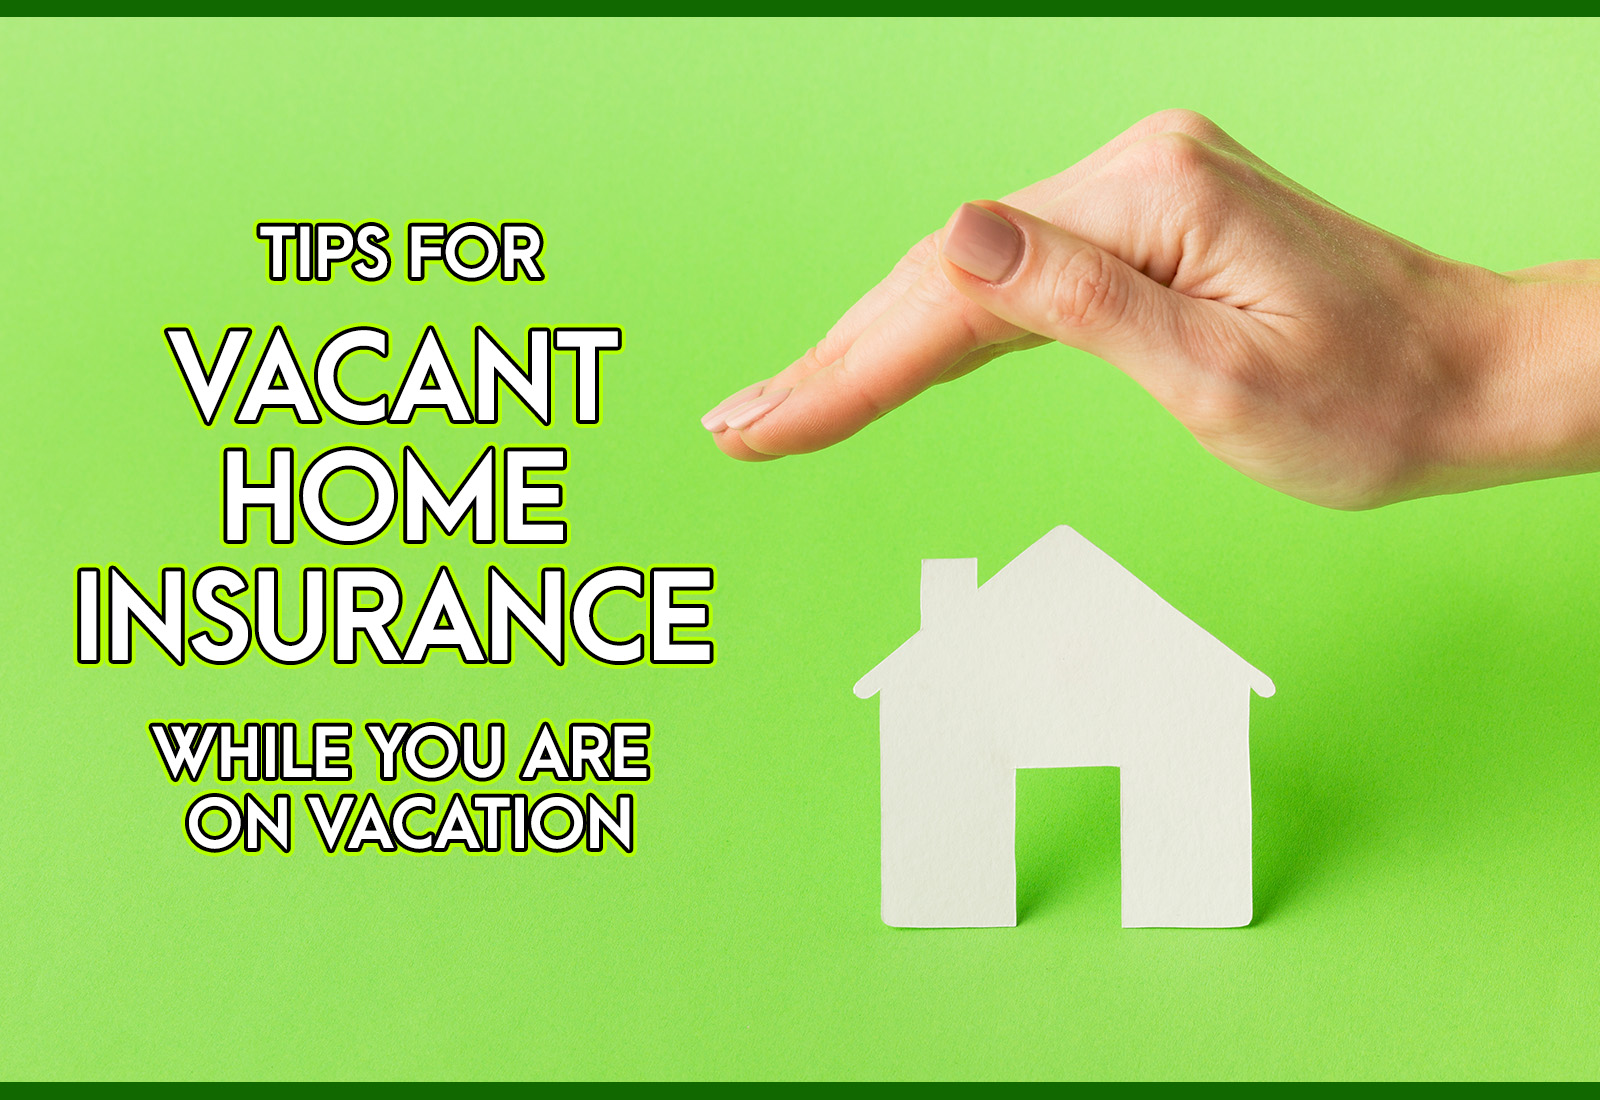 5 Tips for Protecting Your House Through Vacant Home Insurance While You Are on a Vacation